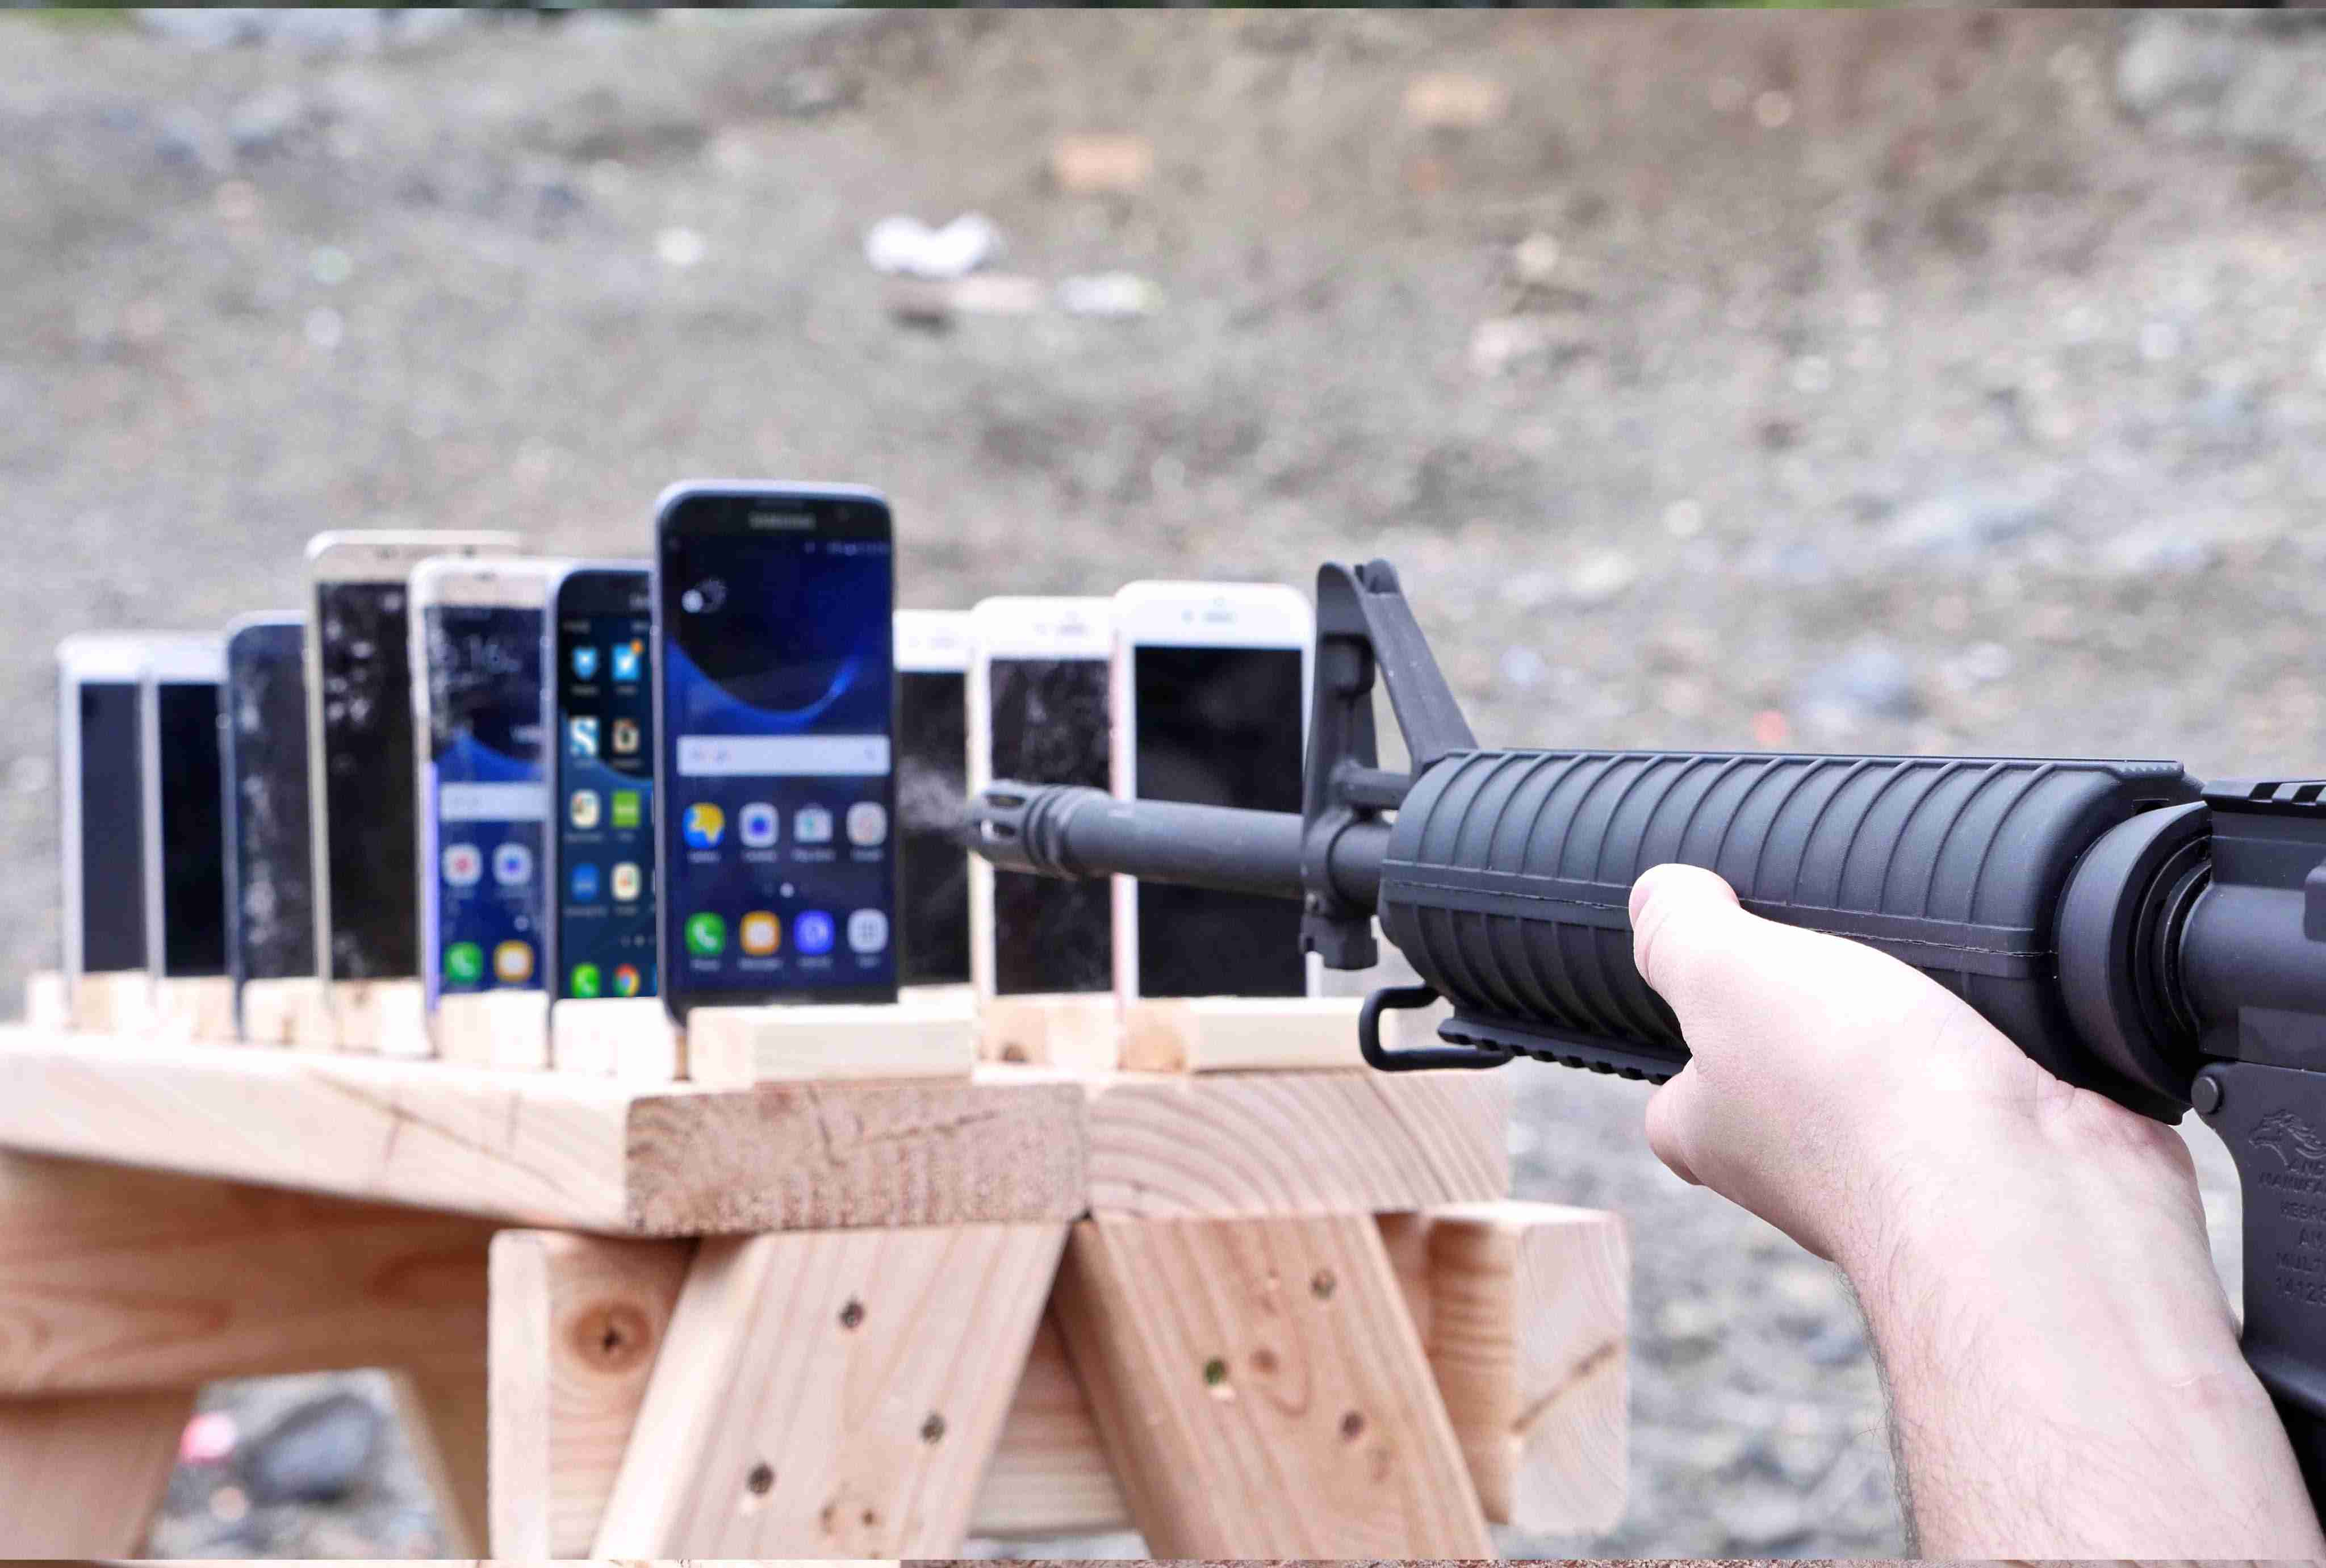 Which Phone is More Bulletproof? Samsung Galaxy vs iPhone - YouTube